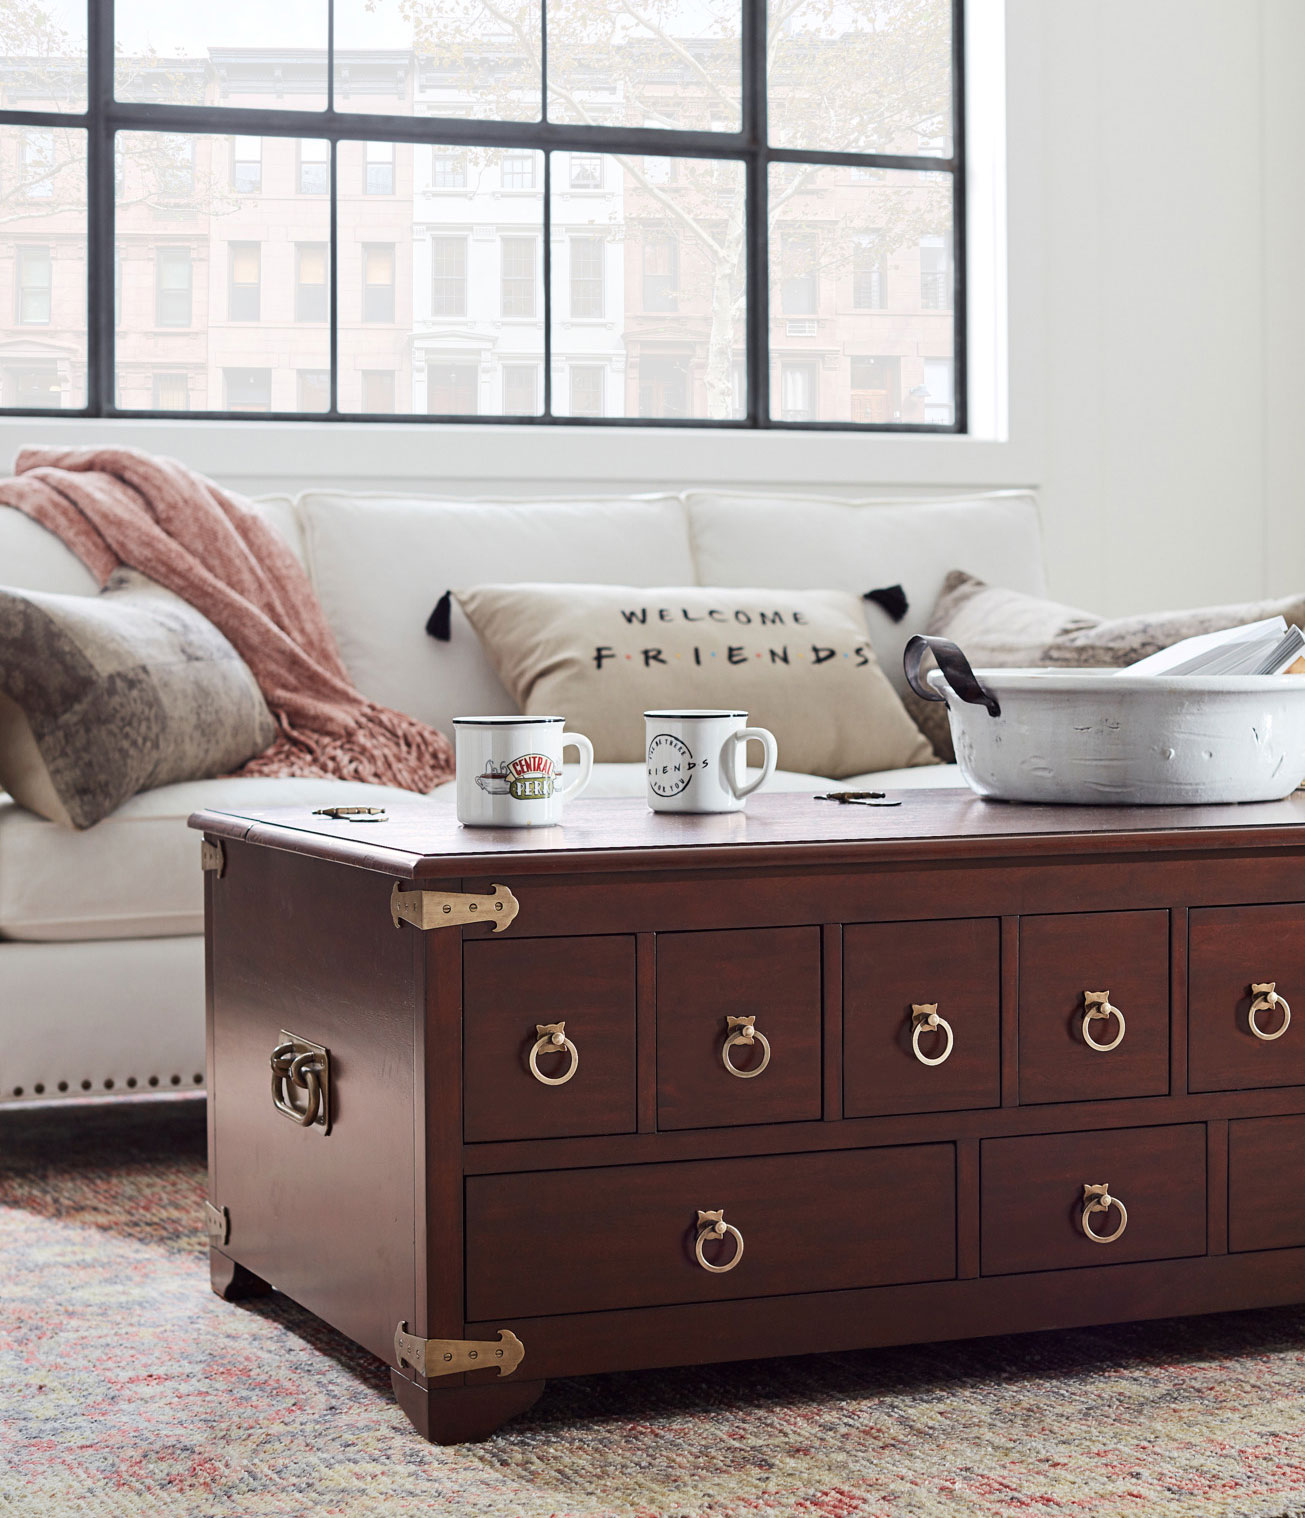 pottery-barn-friends-furniture-line-apothecary-table.jpg